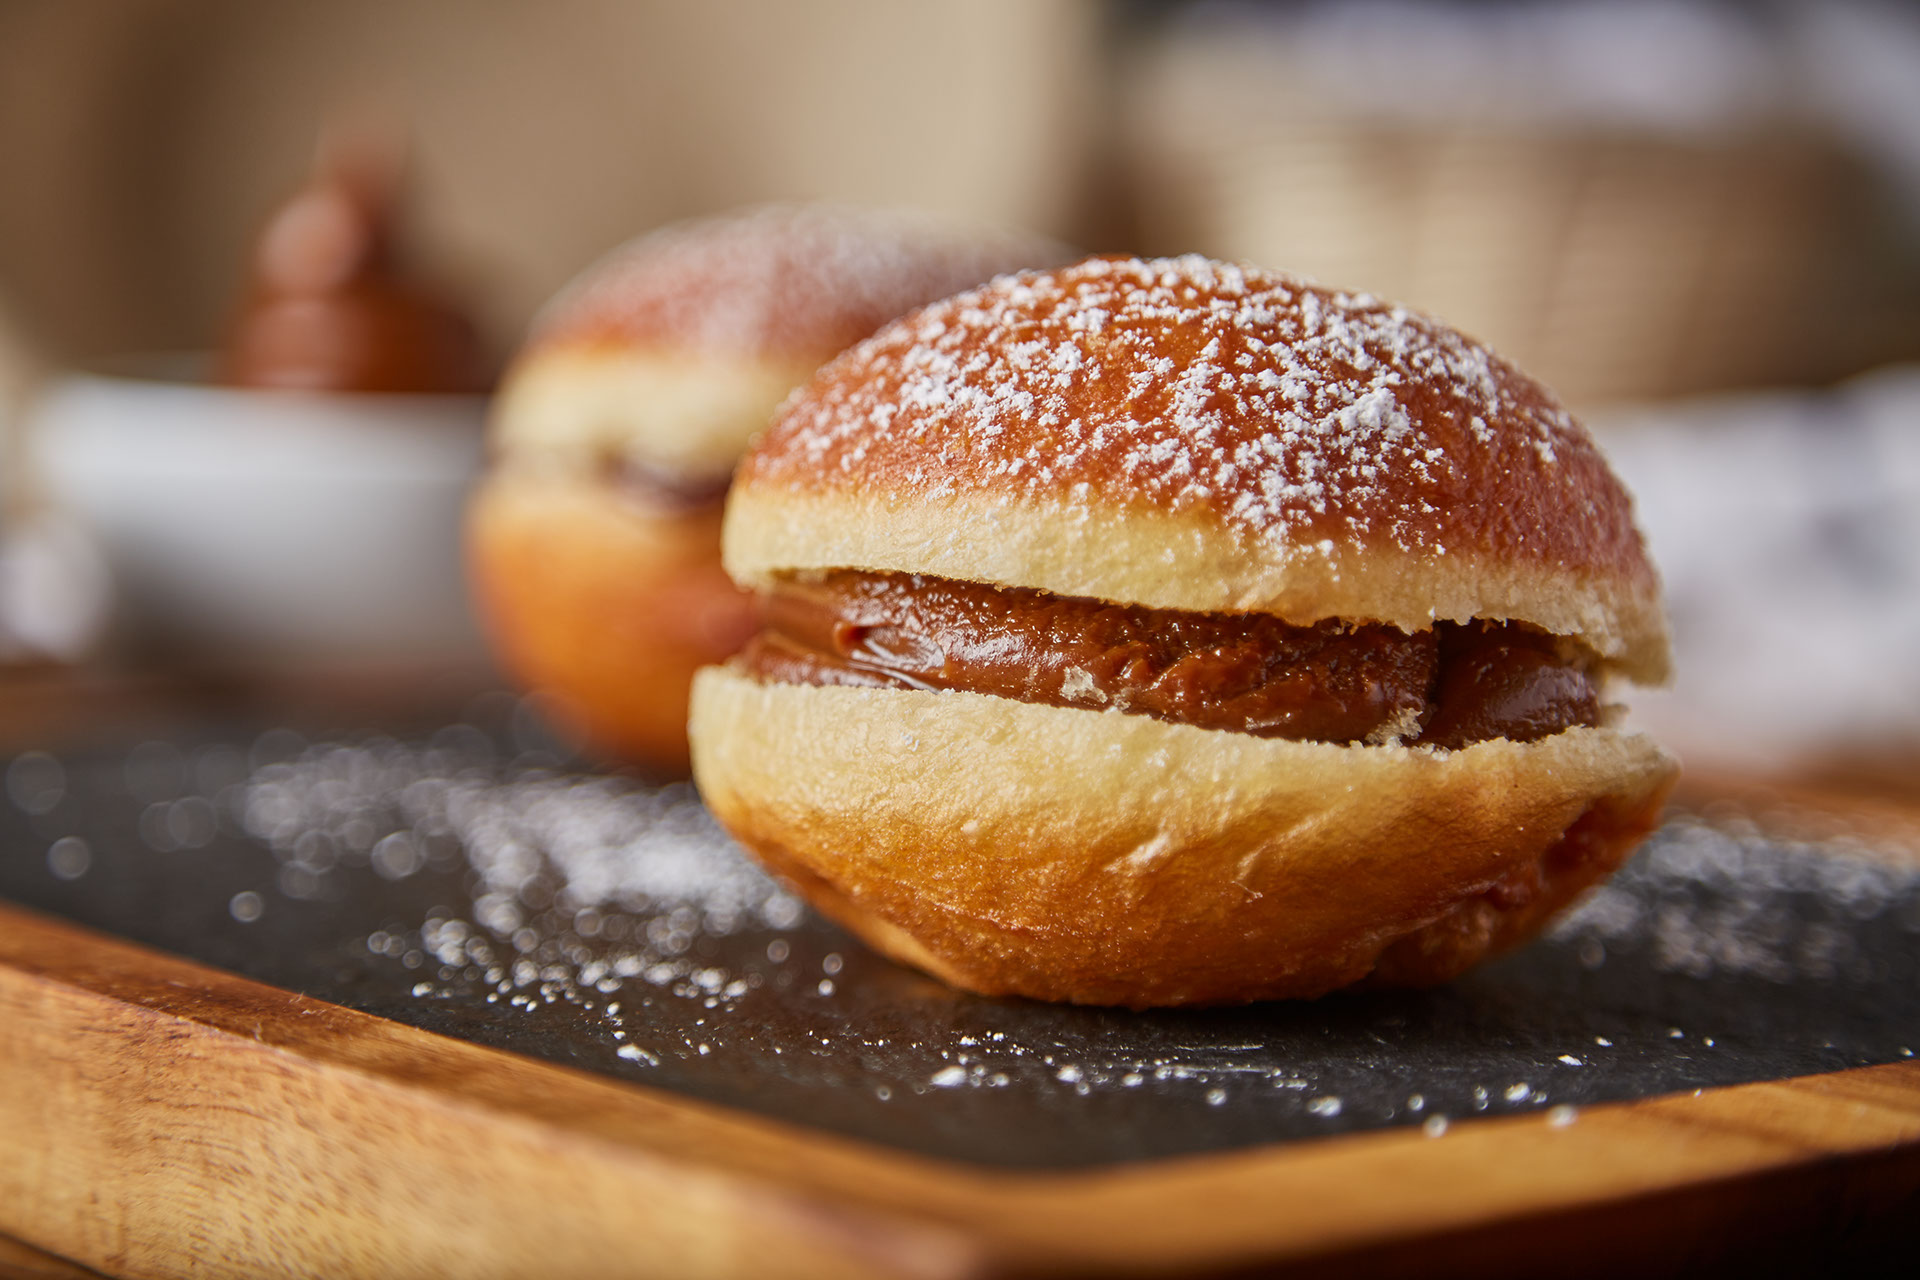 Berliner from Bakery Products Menu